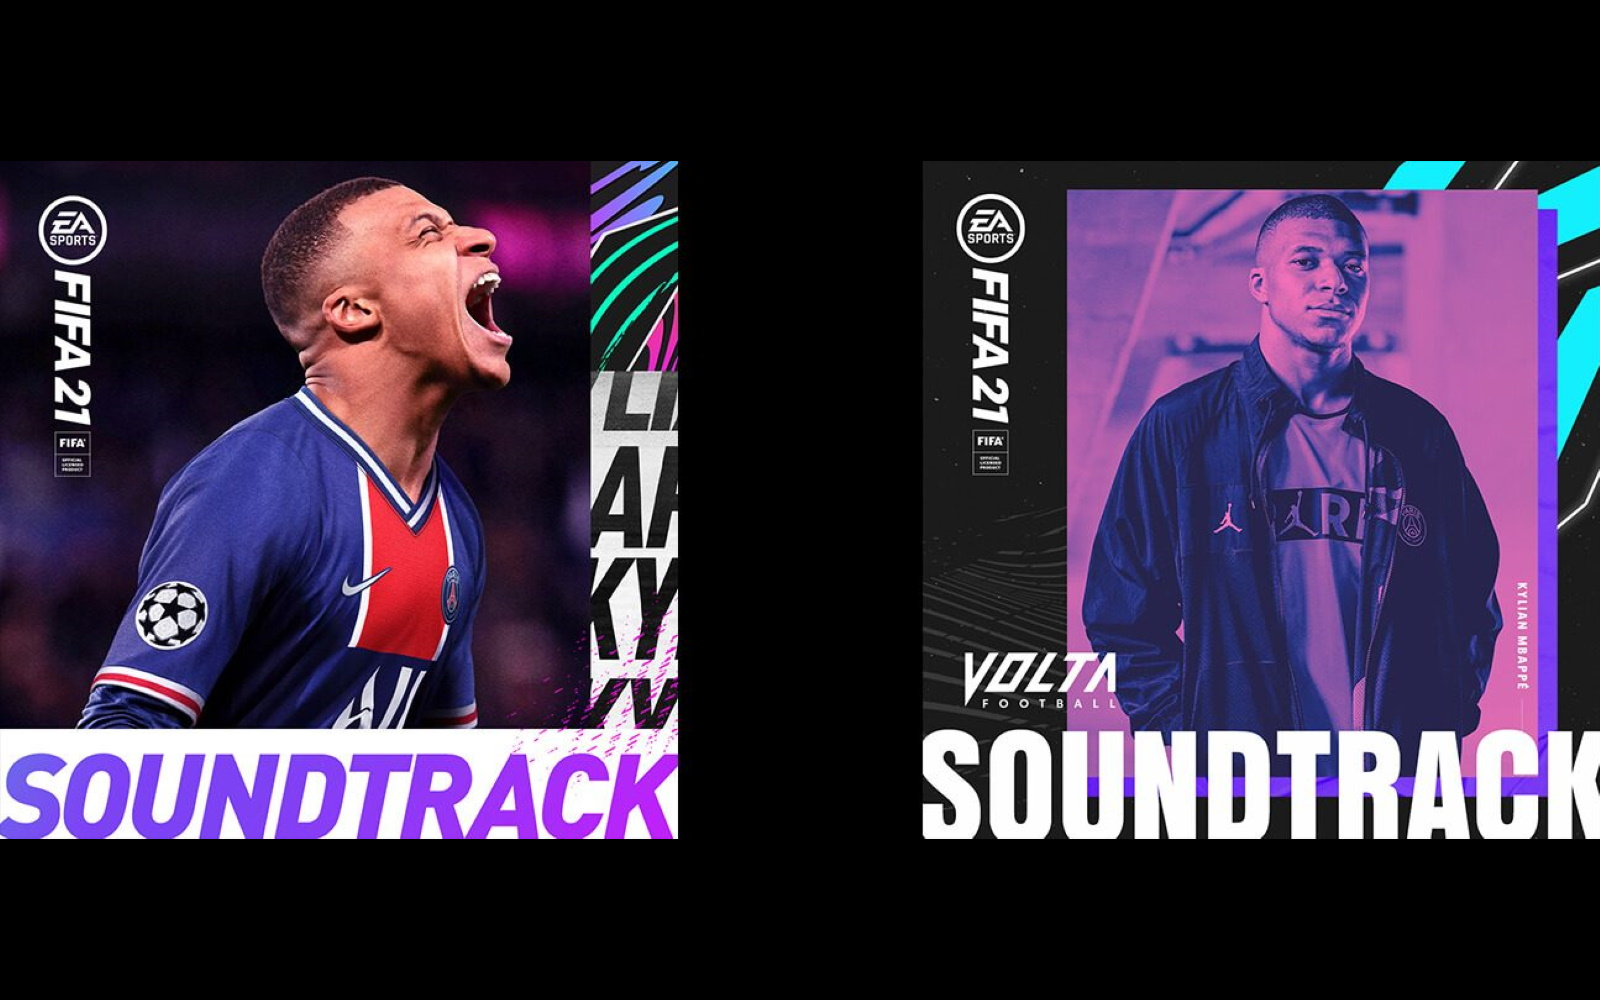 FIFA 21 Soundtrack Is Revealed And Is Available To Stream Right Now